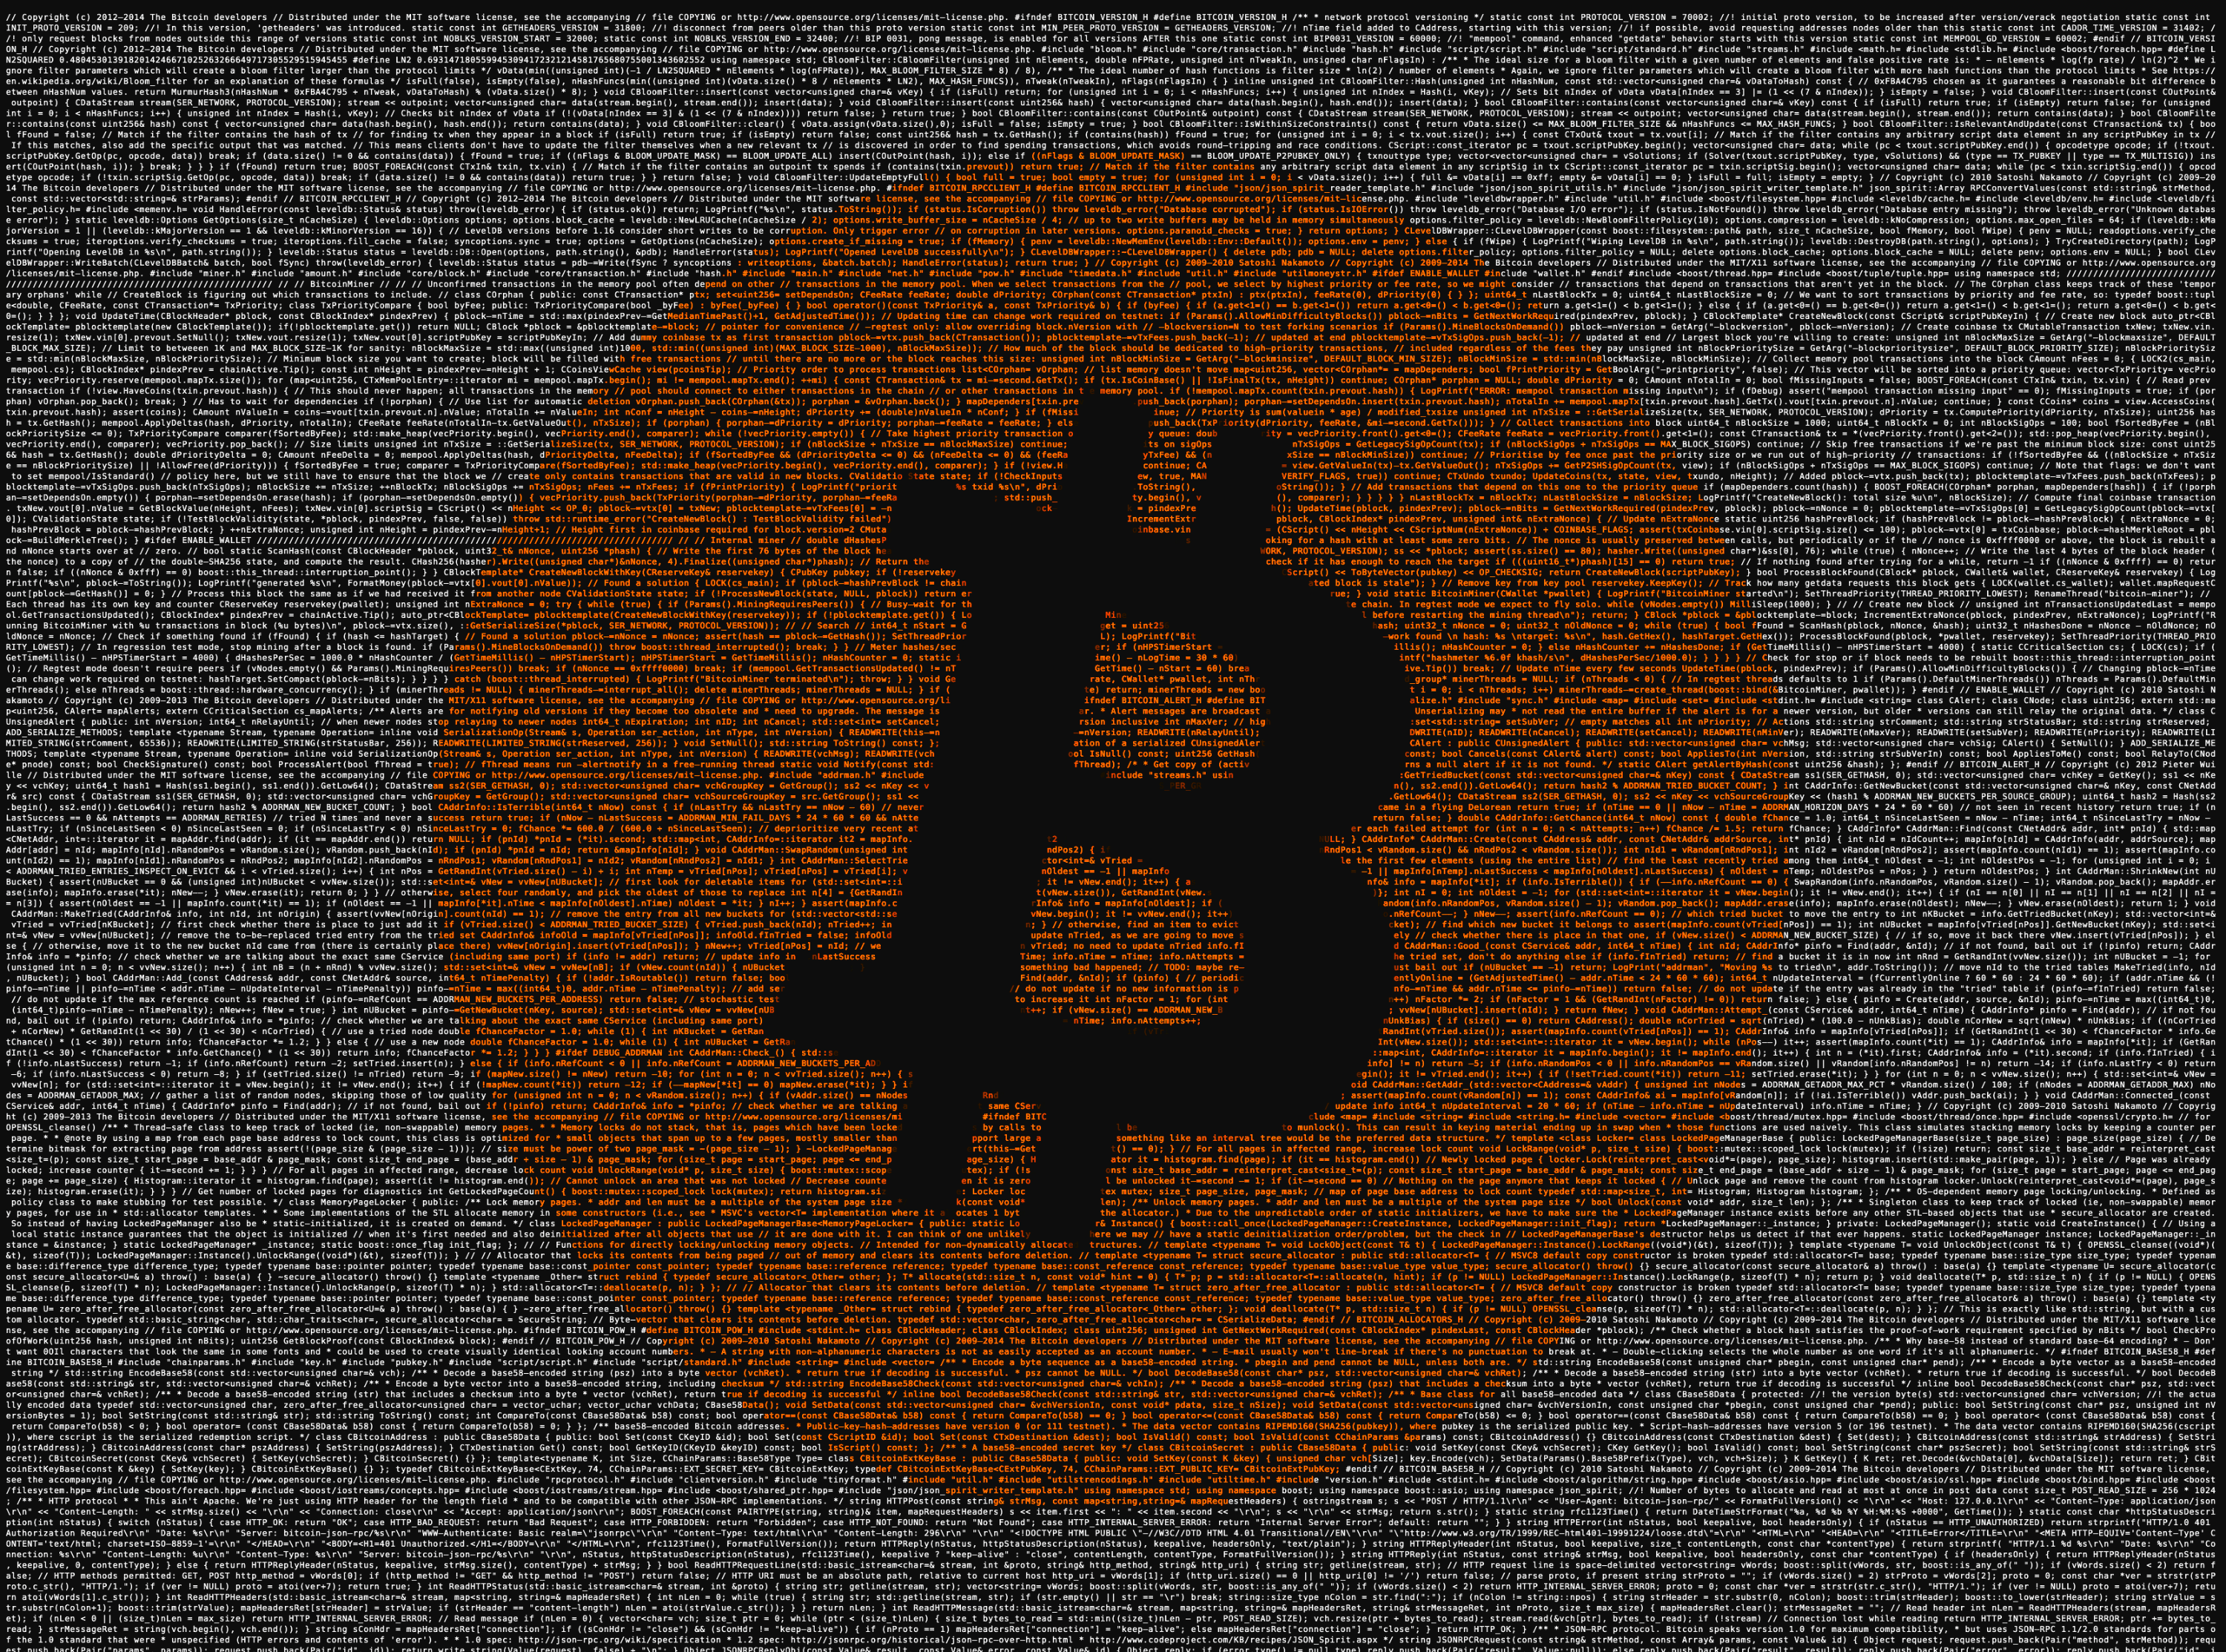 bitcoin-codebg-dark